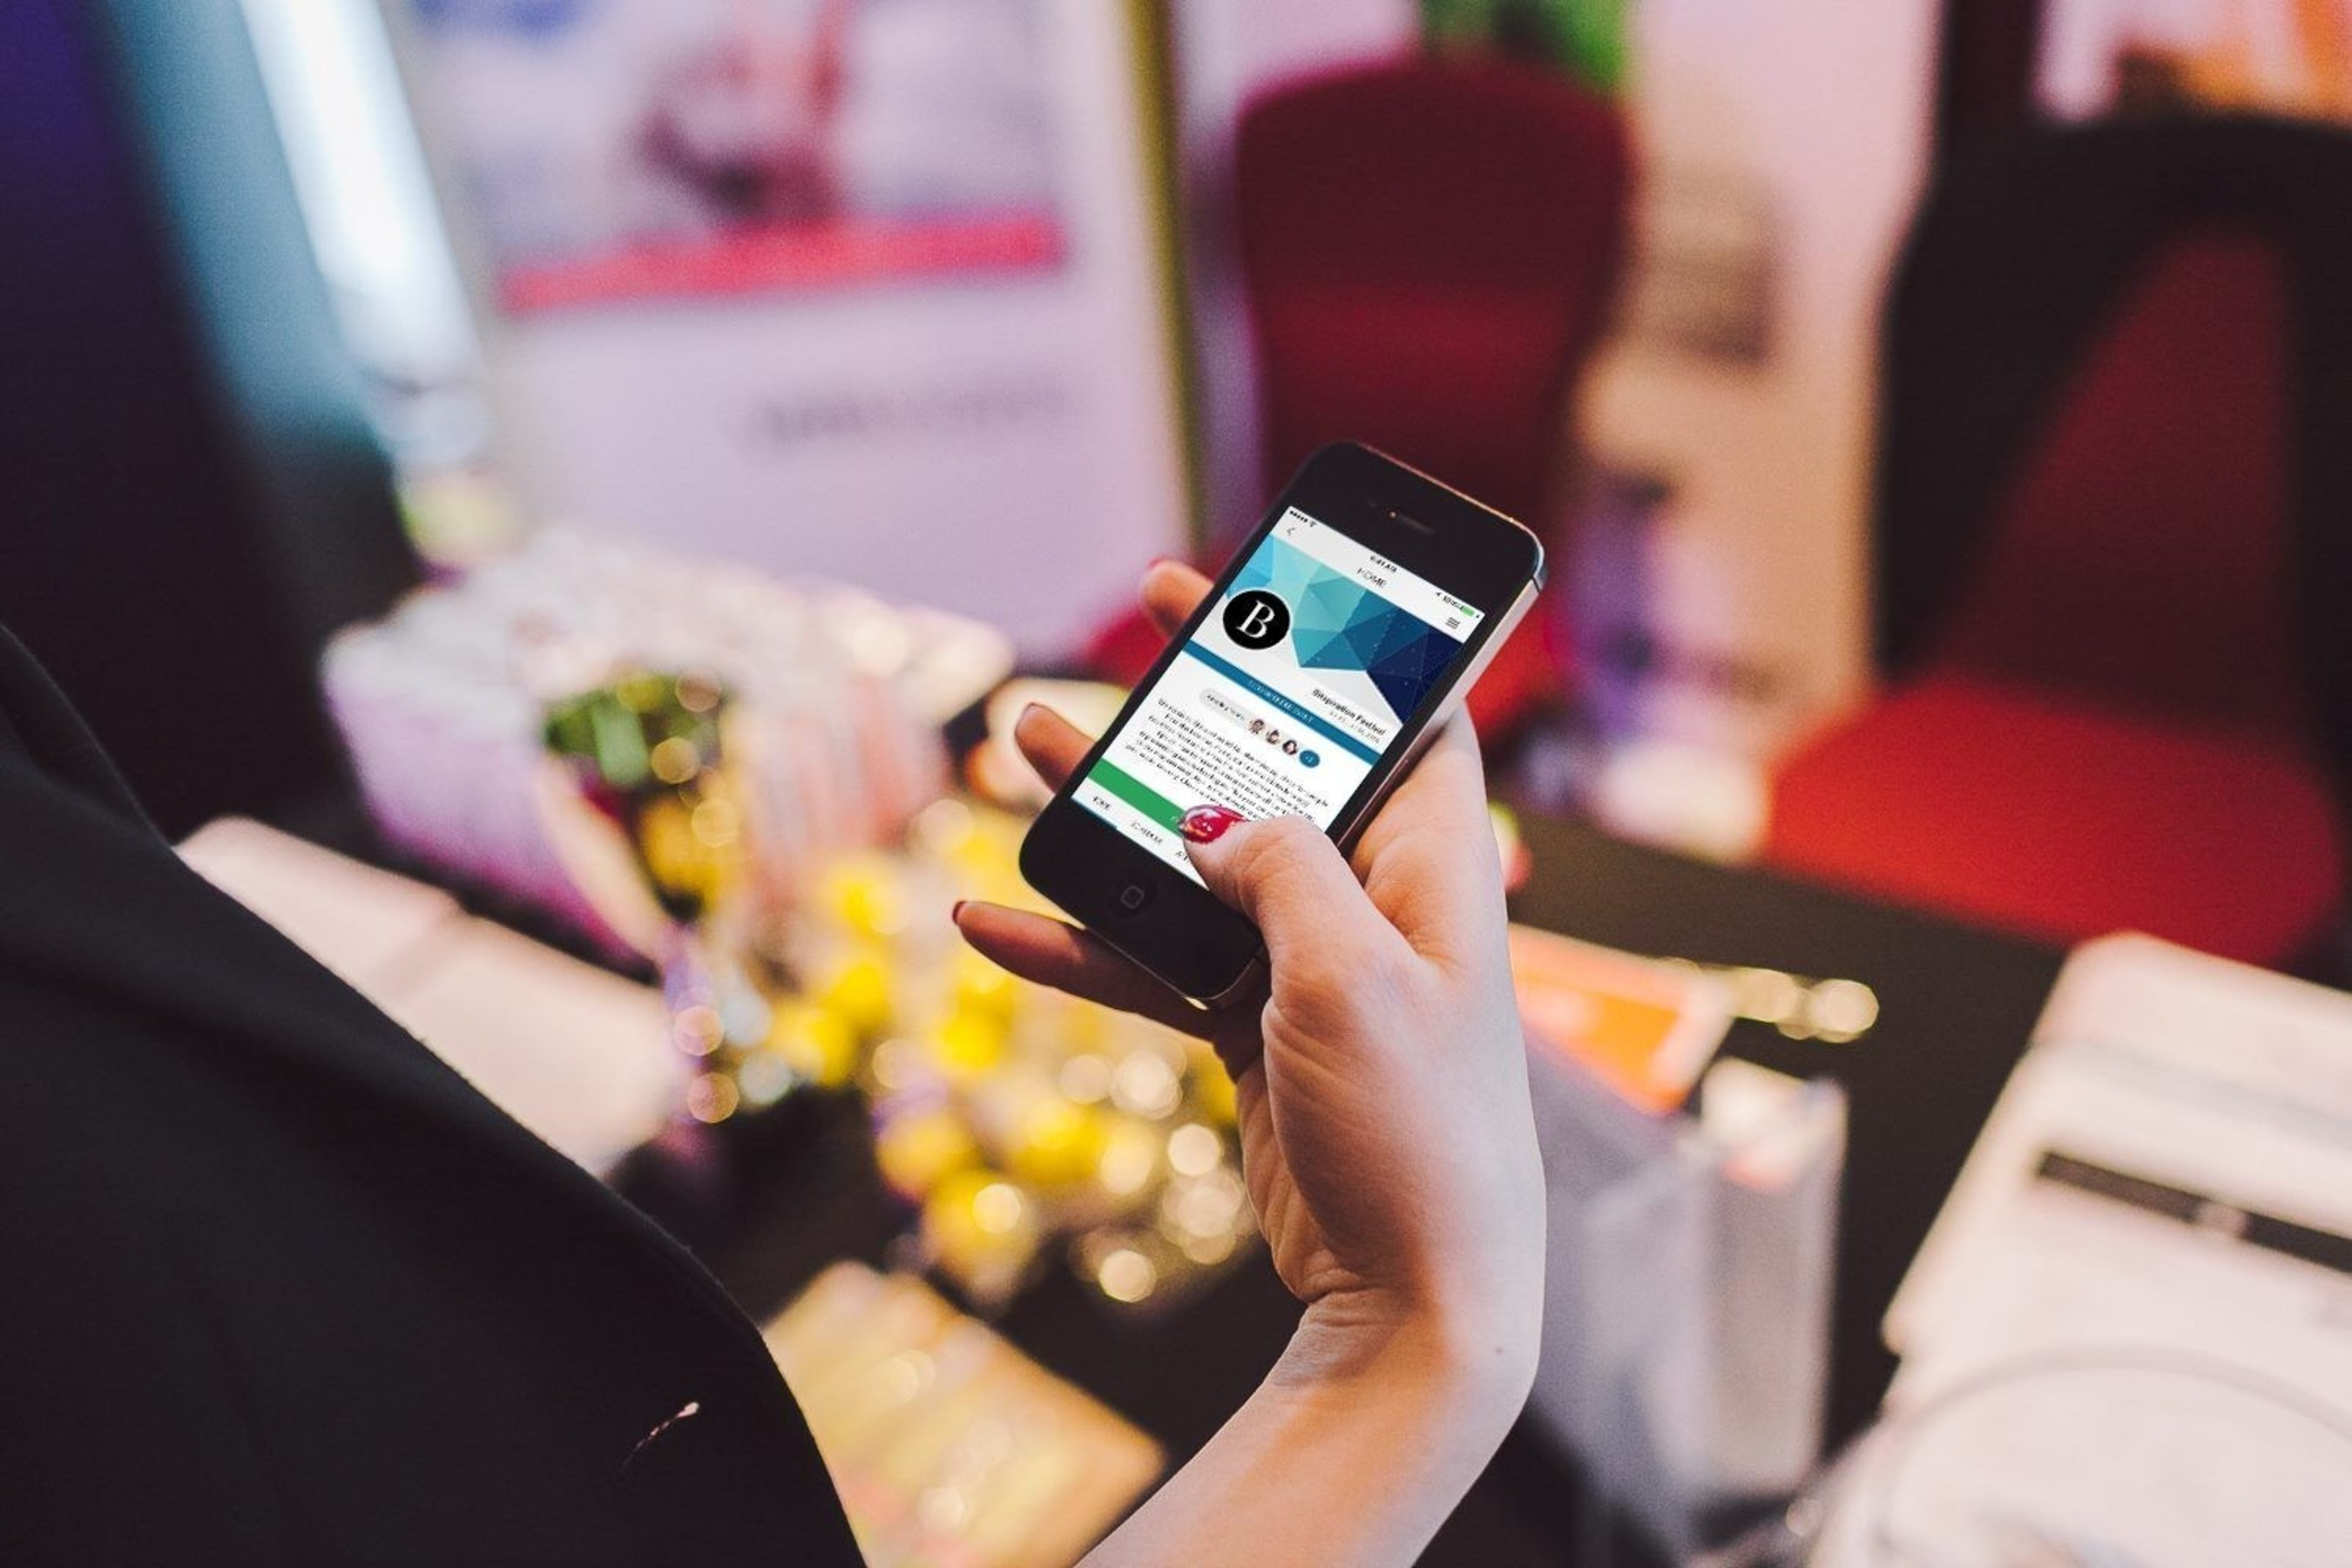 It doesn't matter if you are a professional event manager, an attendee or someone who just wants to plan a small event.You'll be happy to discover the new stress-relieving features that we crafted with your needs in mind. We have for you an extensive web platform, a bunch of awesome options, and a cool search engine. And the best part is... the standard version of Eventory is for FREE